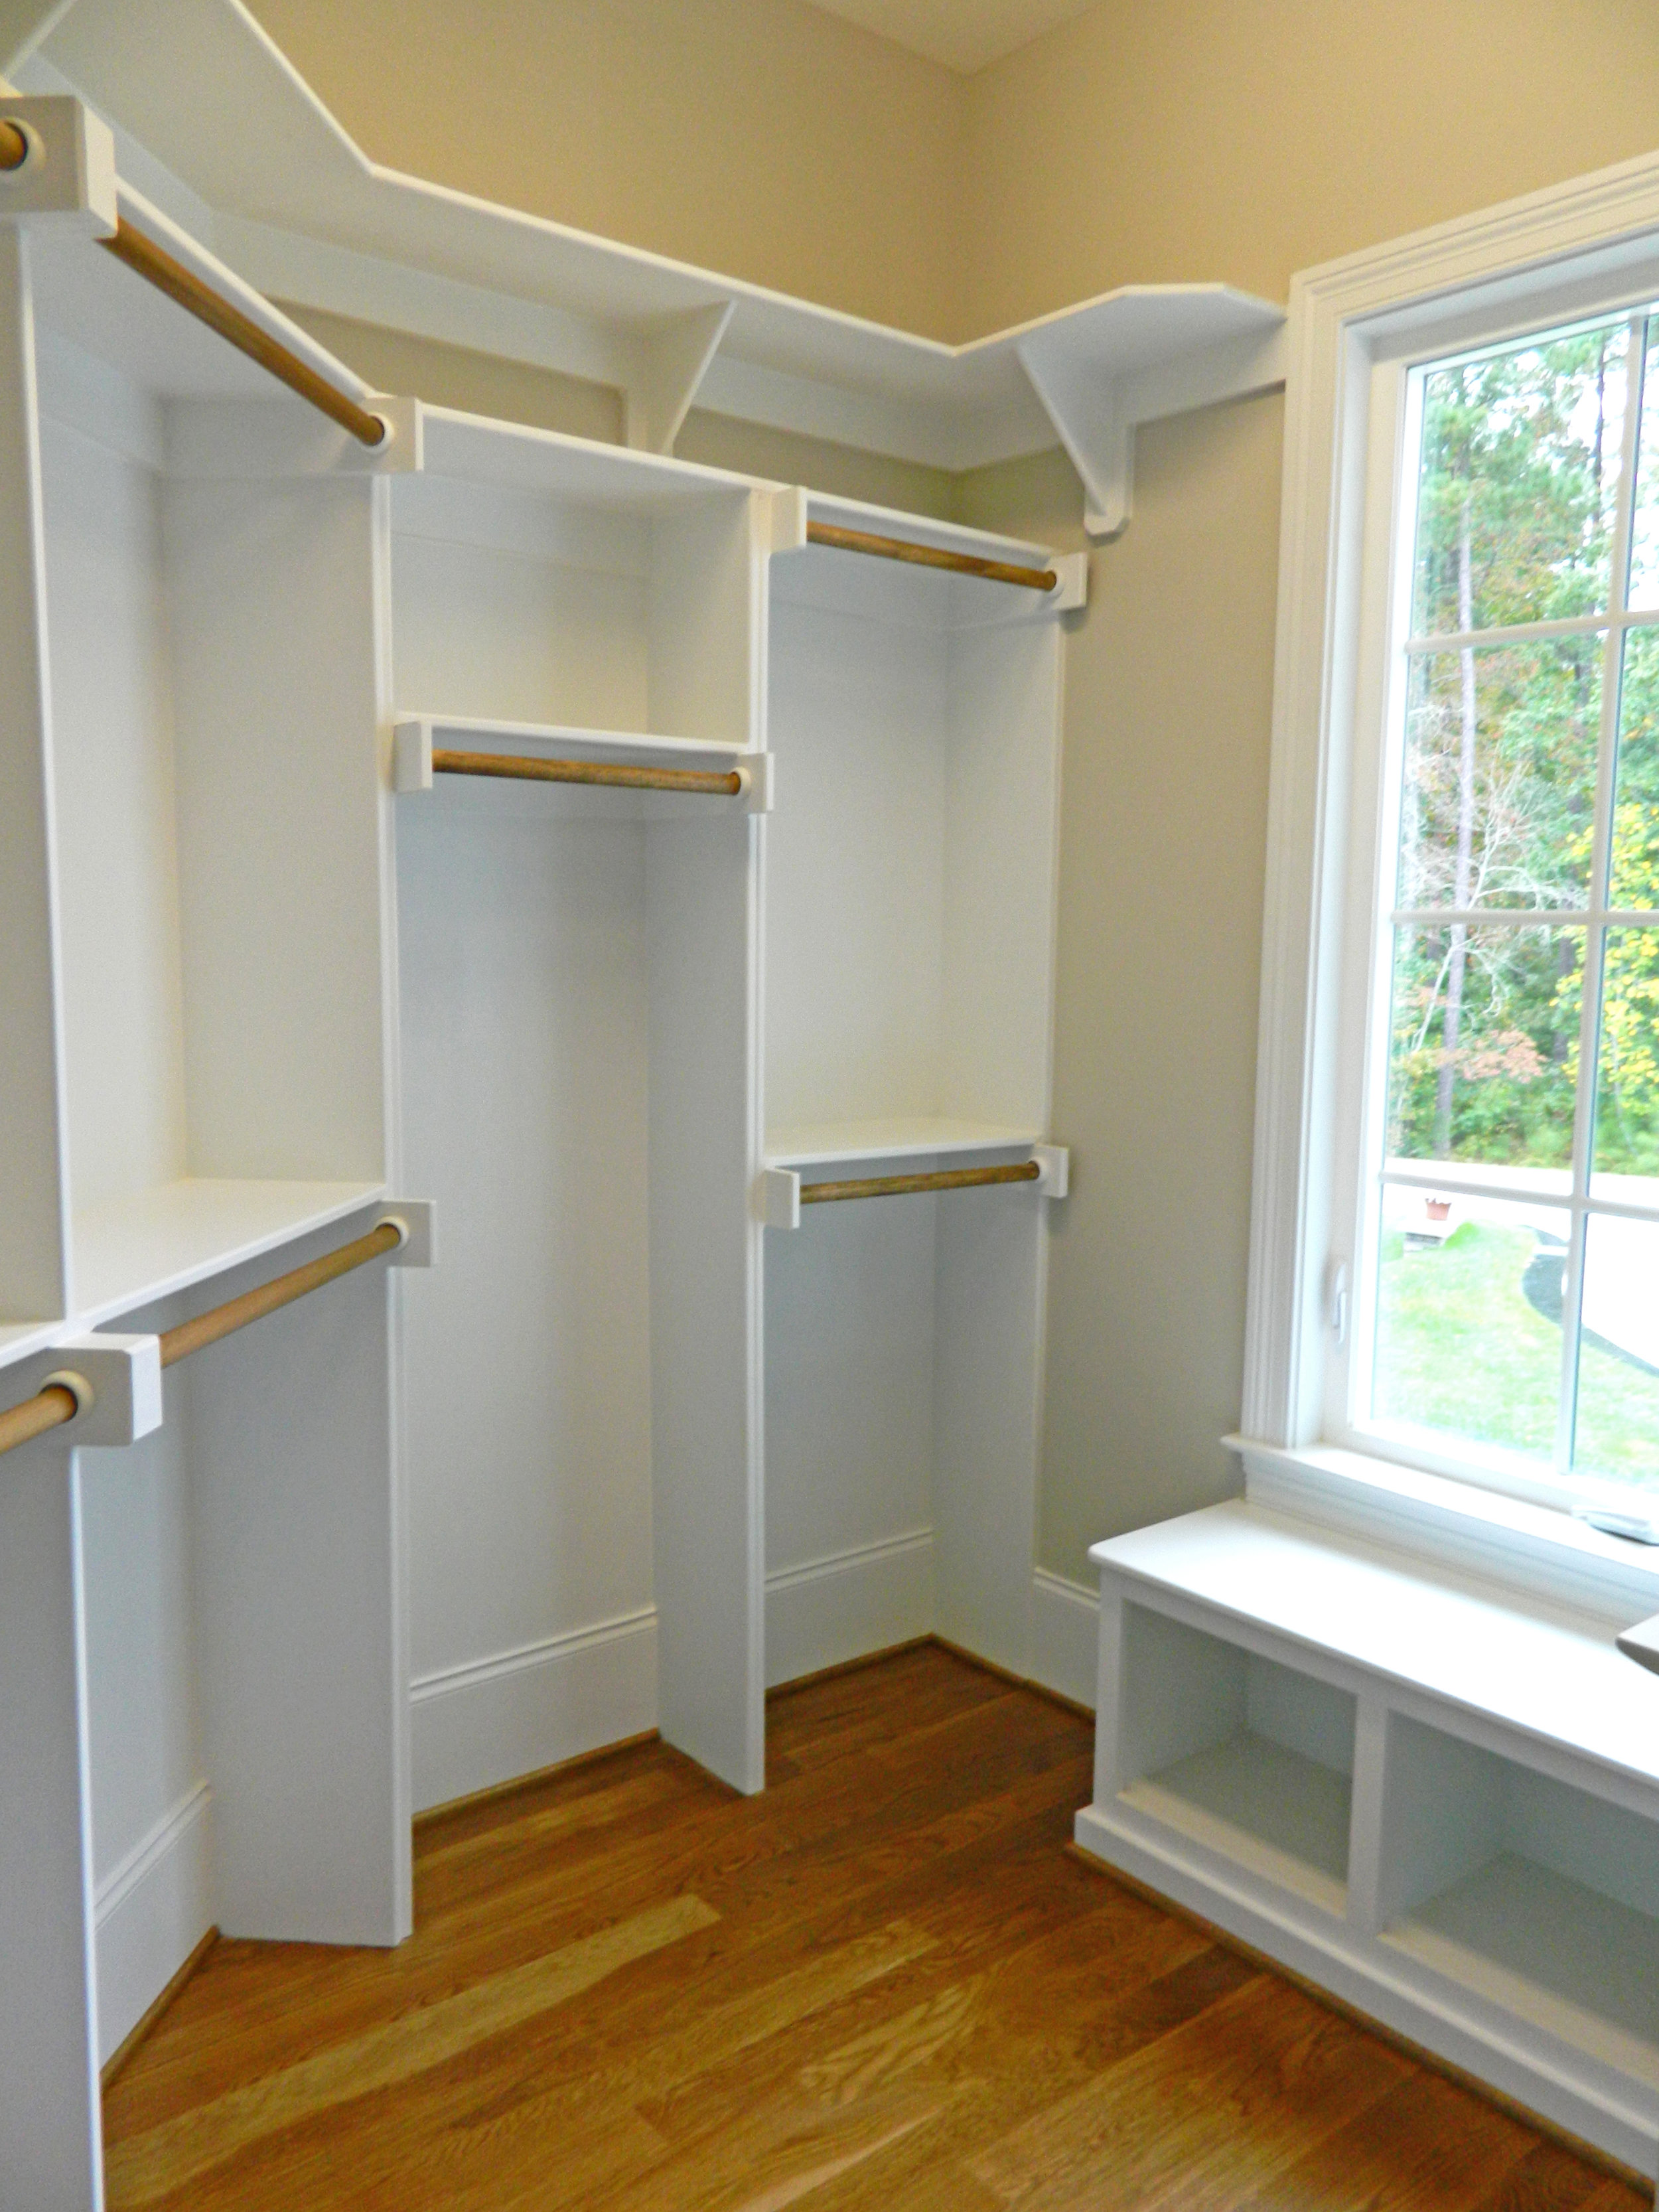 Walk-In Closet with Window Seat, Double & Long Hang, and Cleated Shelf at Top